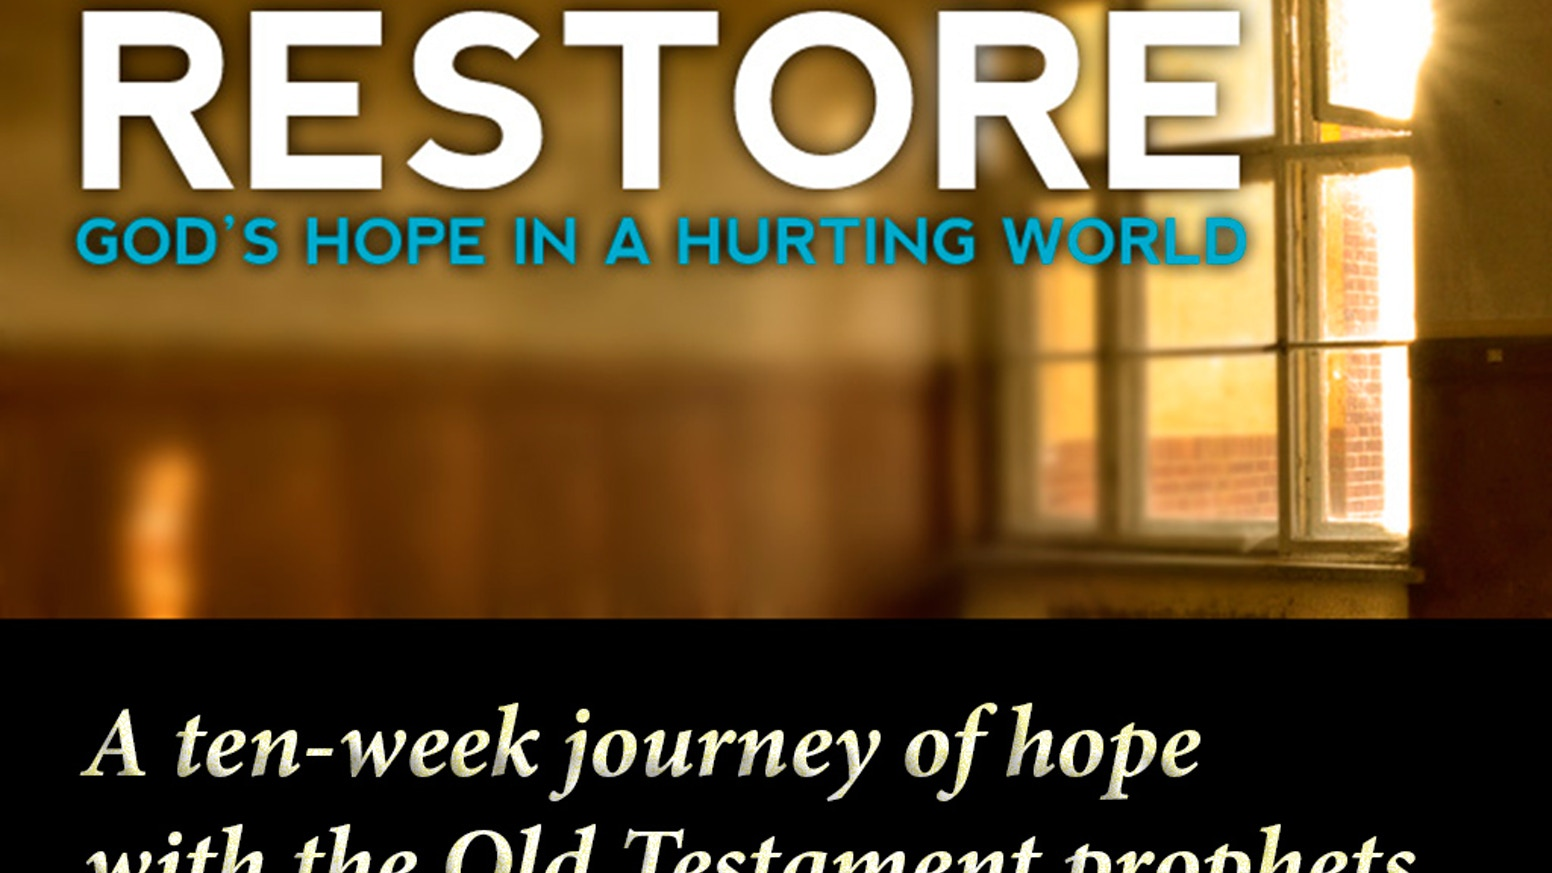 Restore: God's Hope in a Hurting World - Bible Study Book by Timothy